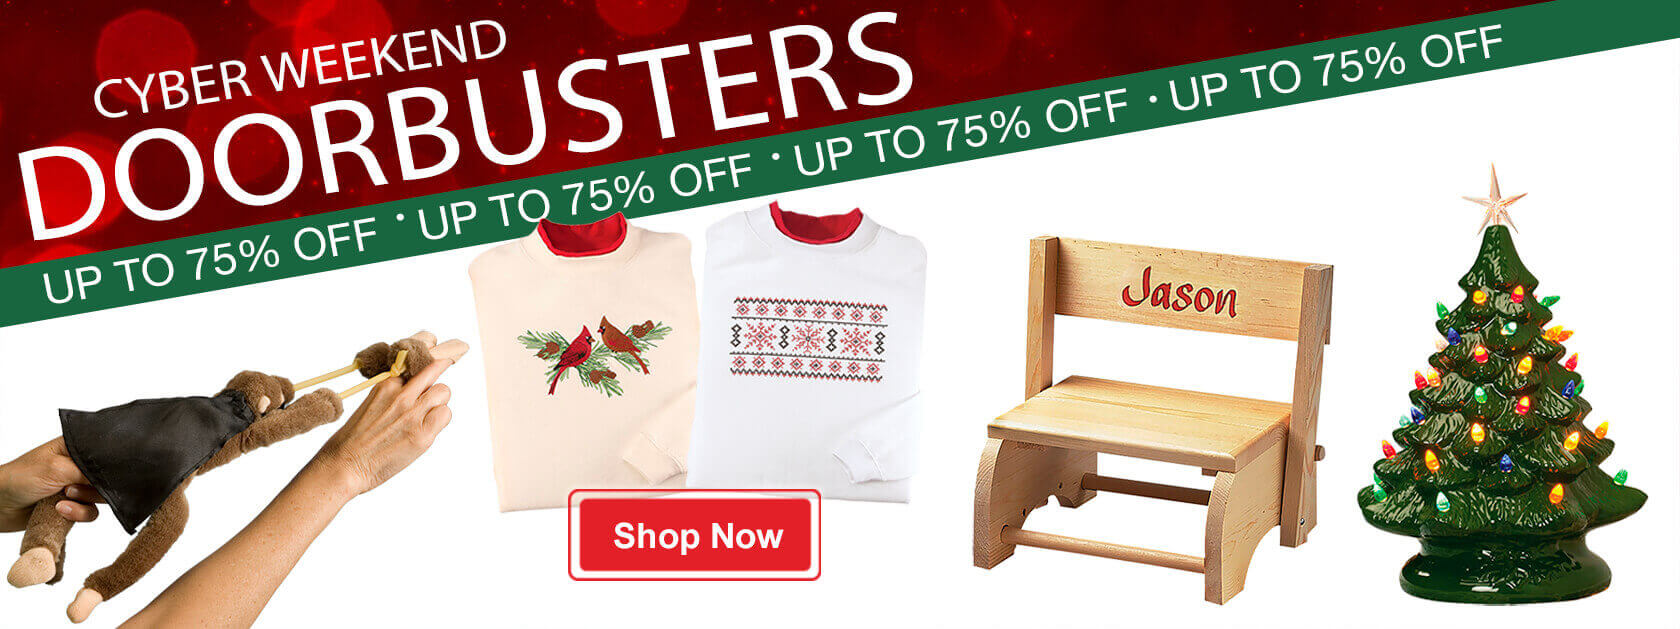 Cyber Weekend Doorbusters